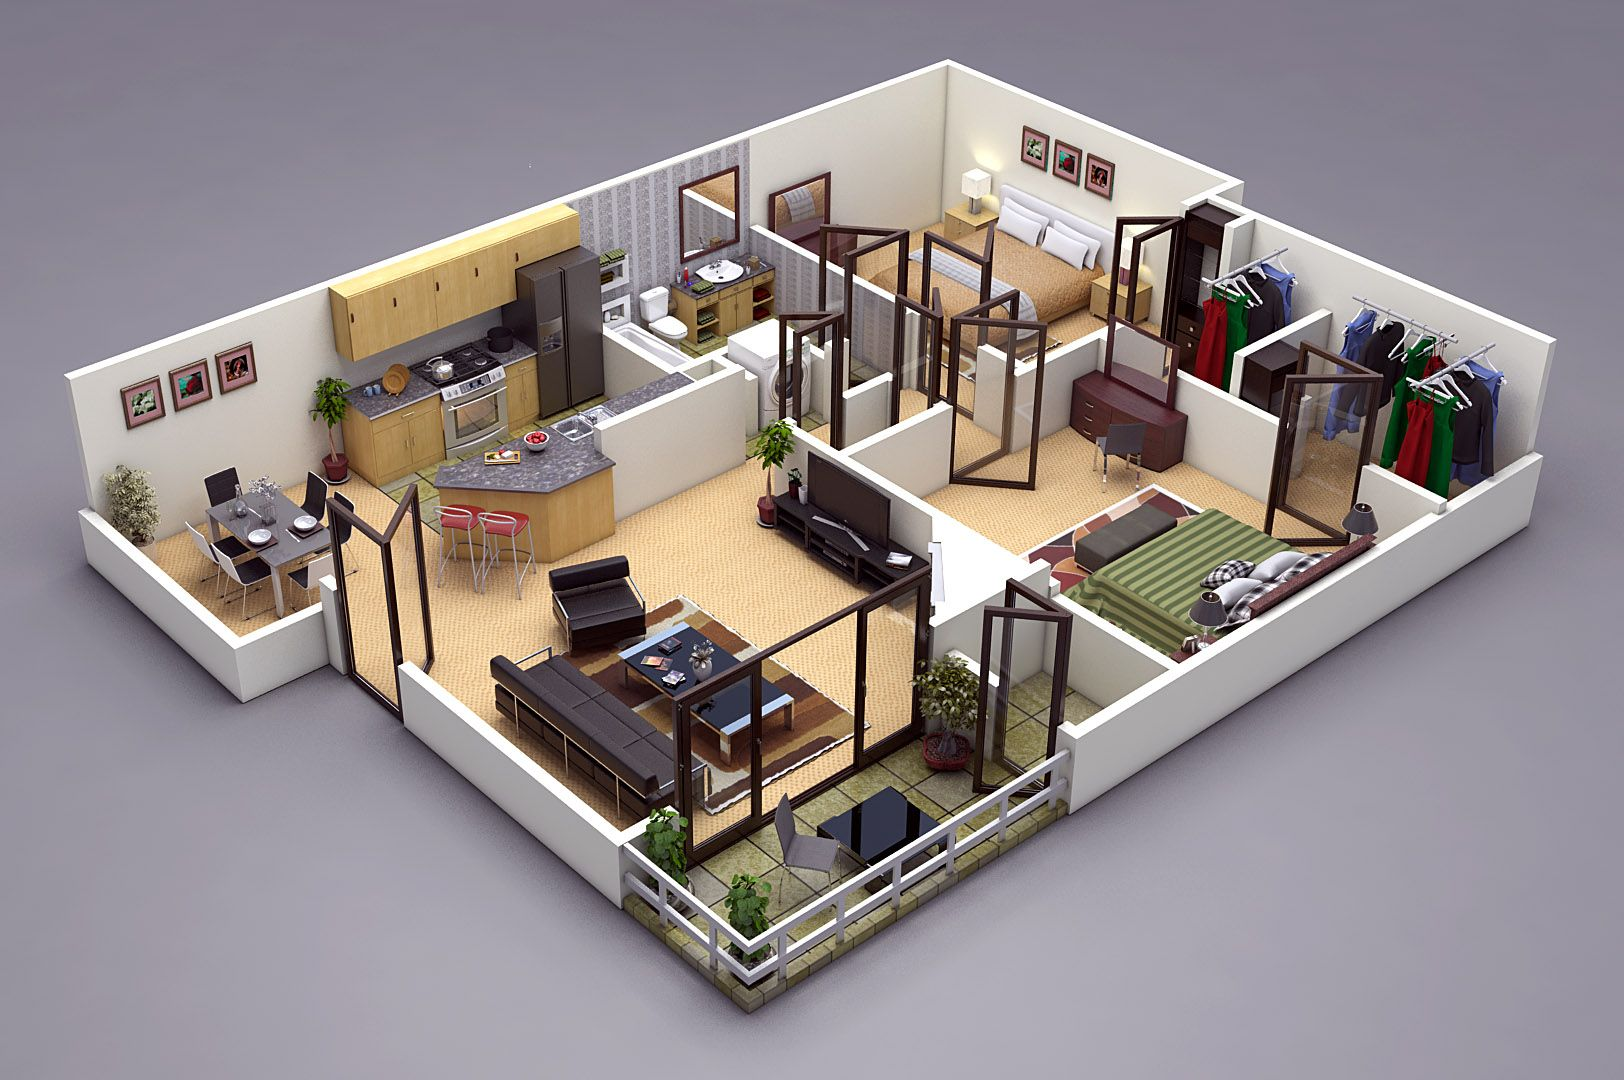 Photo Realistic 3D Floor Plan In 3ds Max / Vray. Http://